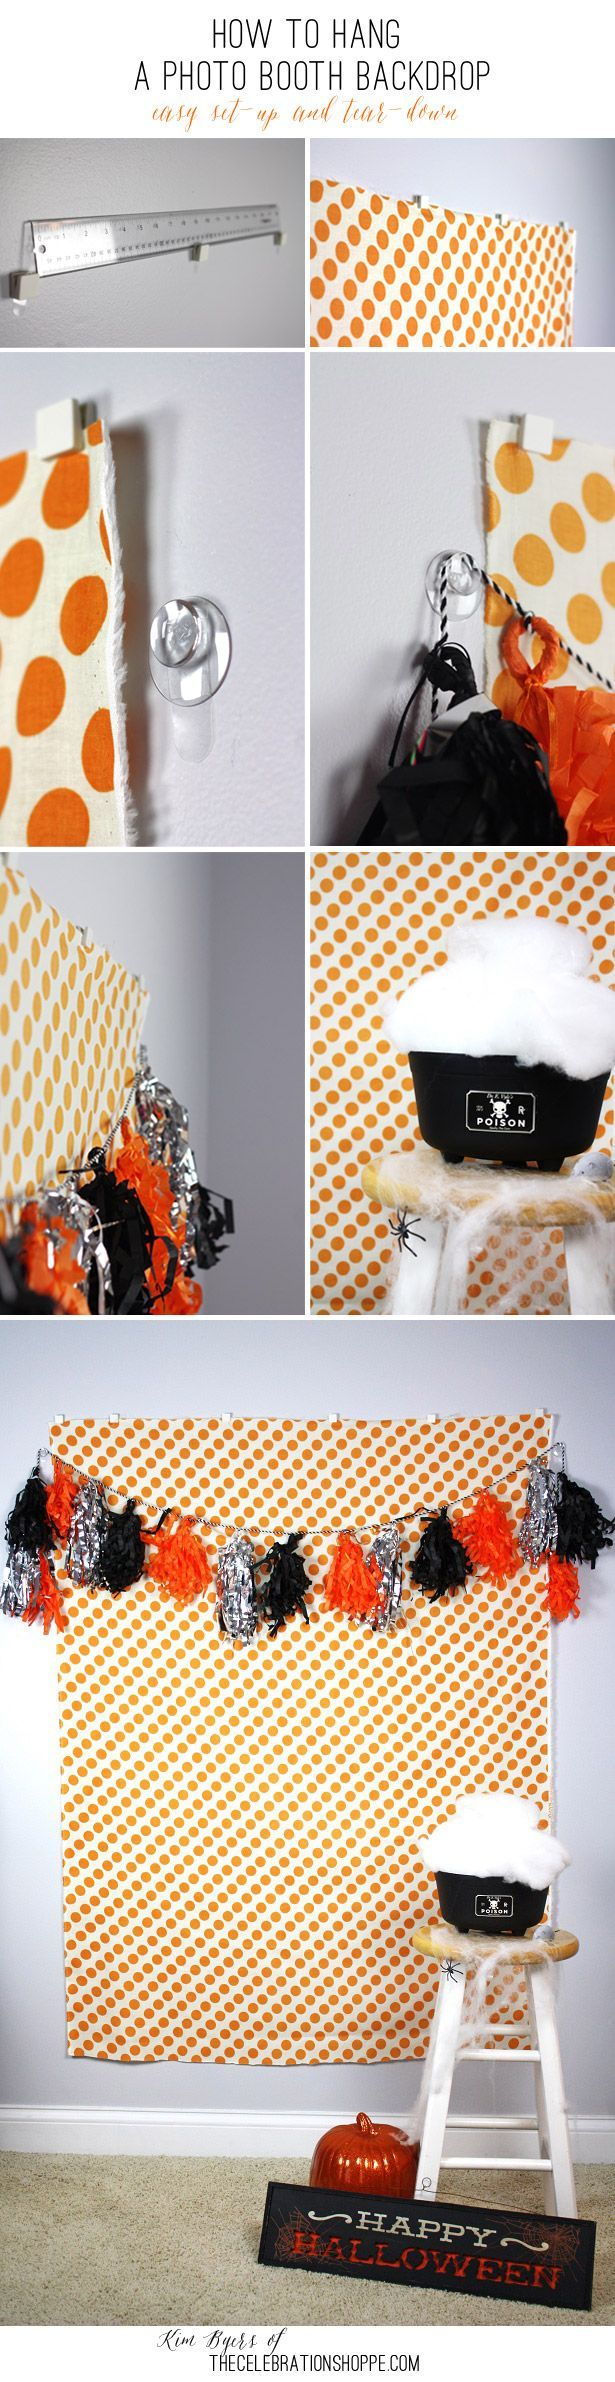 How To Set Up A Photo Booth | Halloween Party Idea DIY Tutorial - Kim Byers, http://TheCelebrationShoppe.com